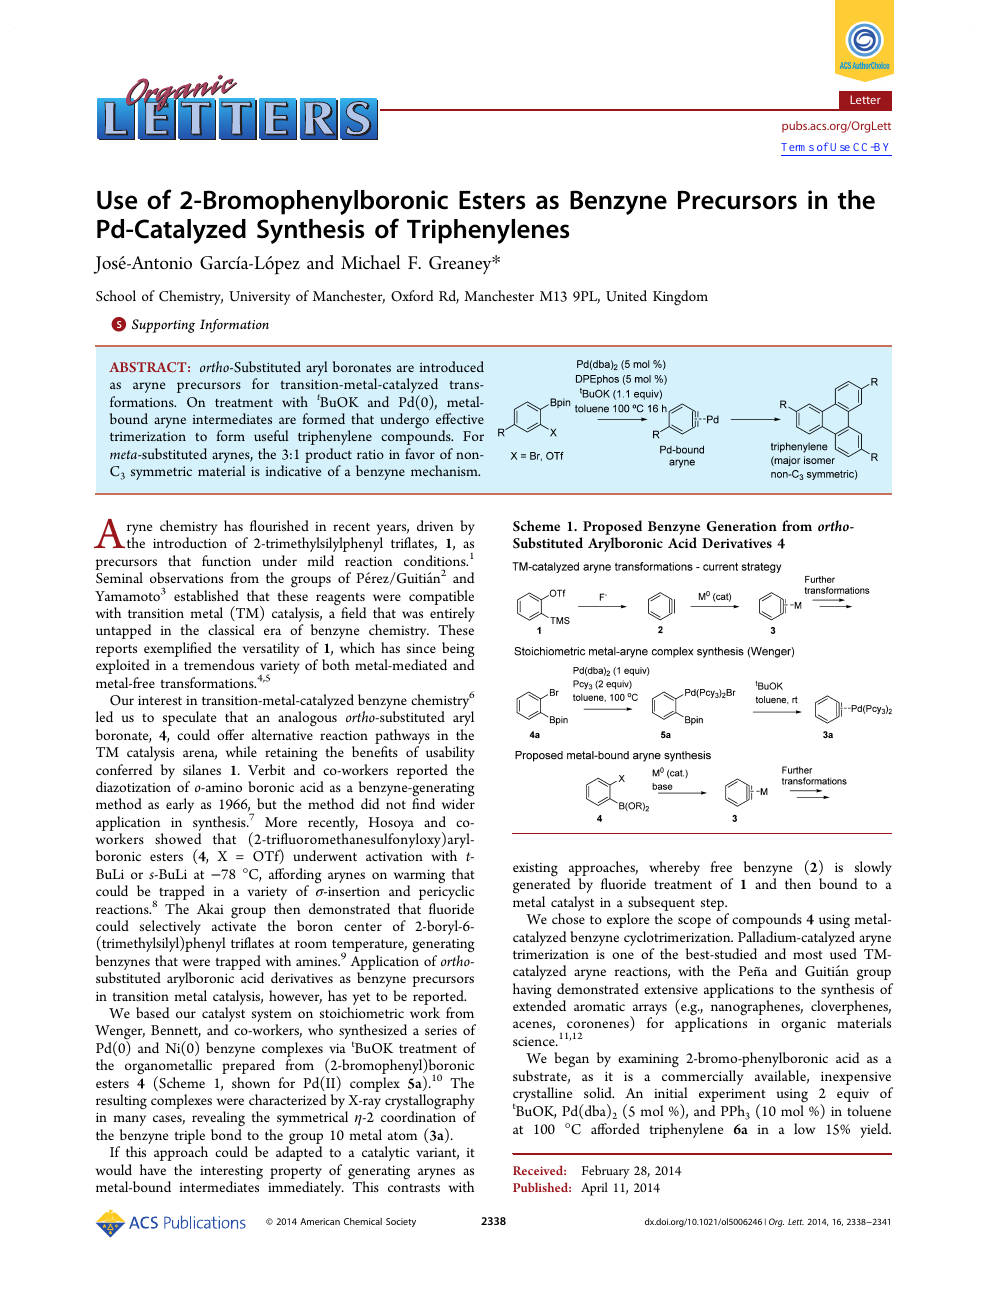 Use of 2-Bromophenylboronic Esters as Benzyne Precursors in the Pd